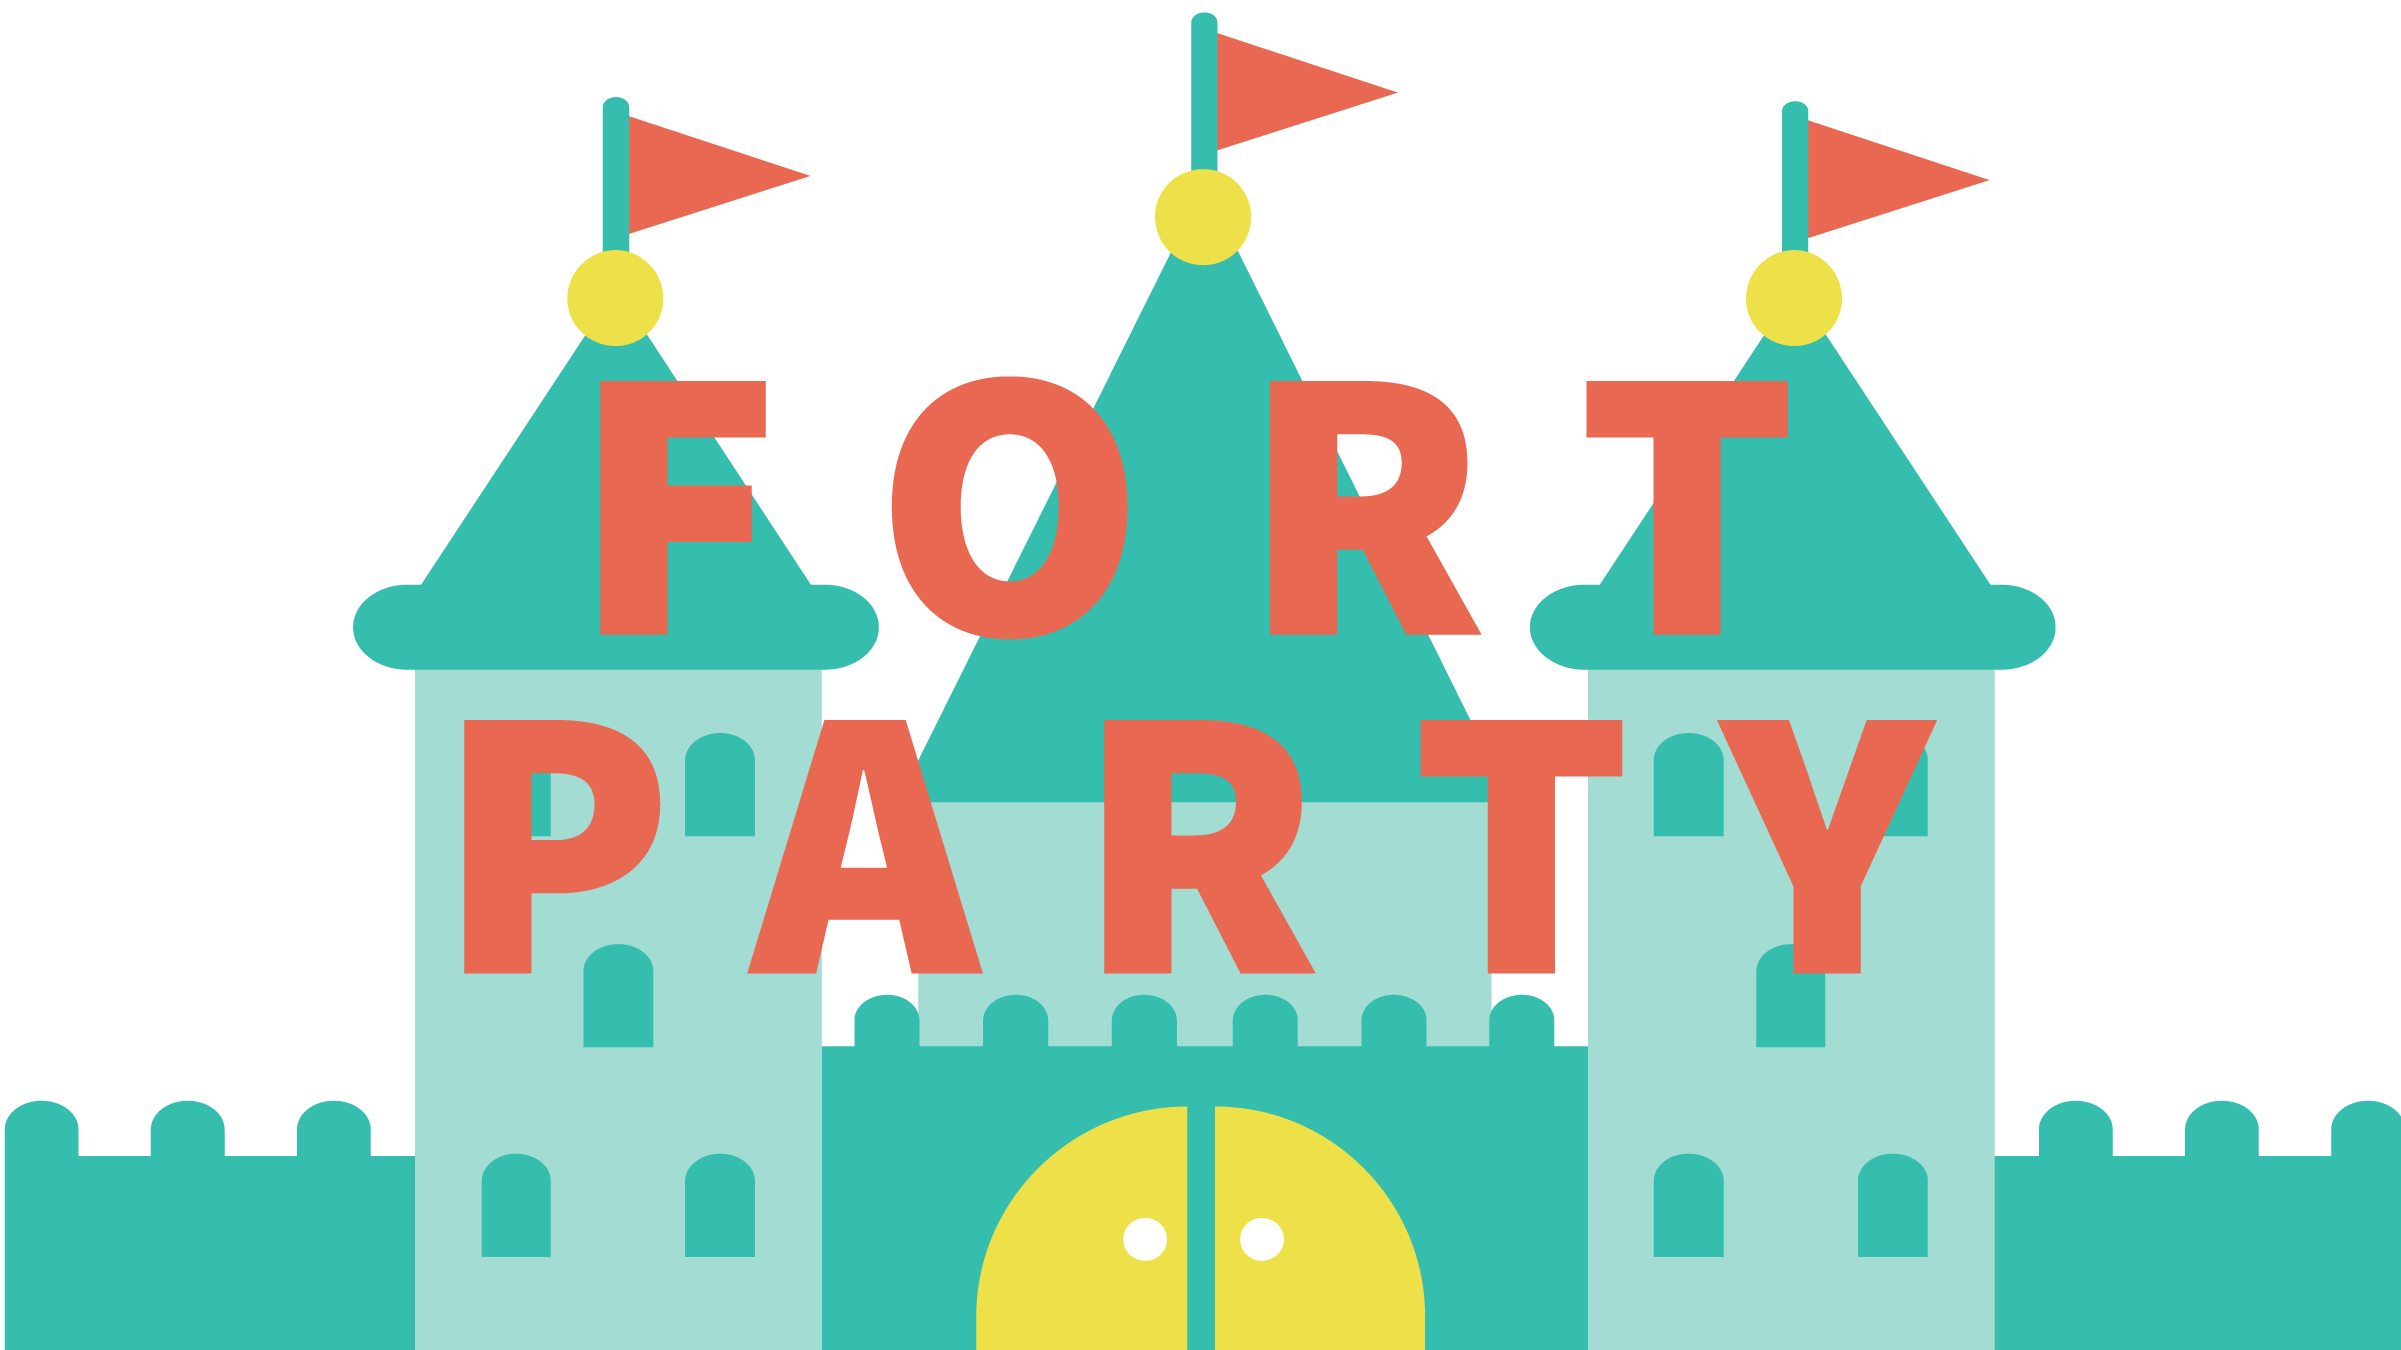 Fort Party-06.png